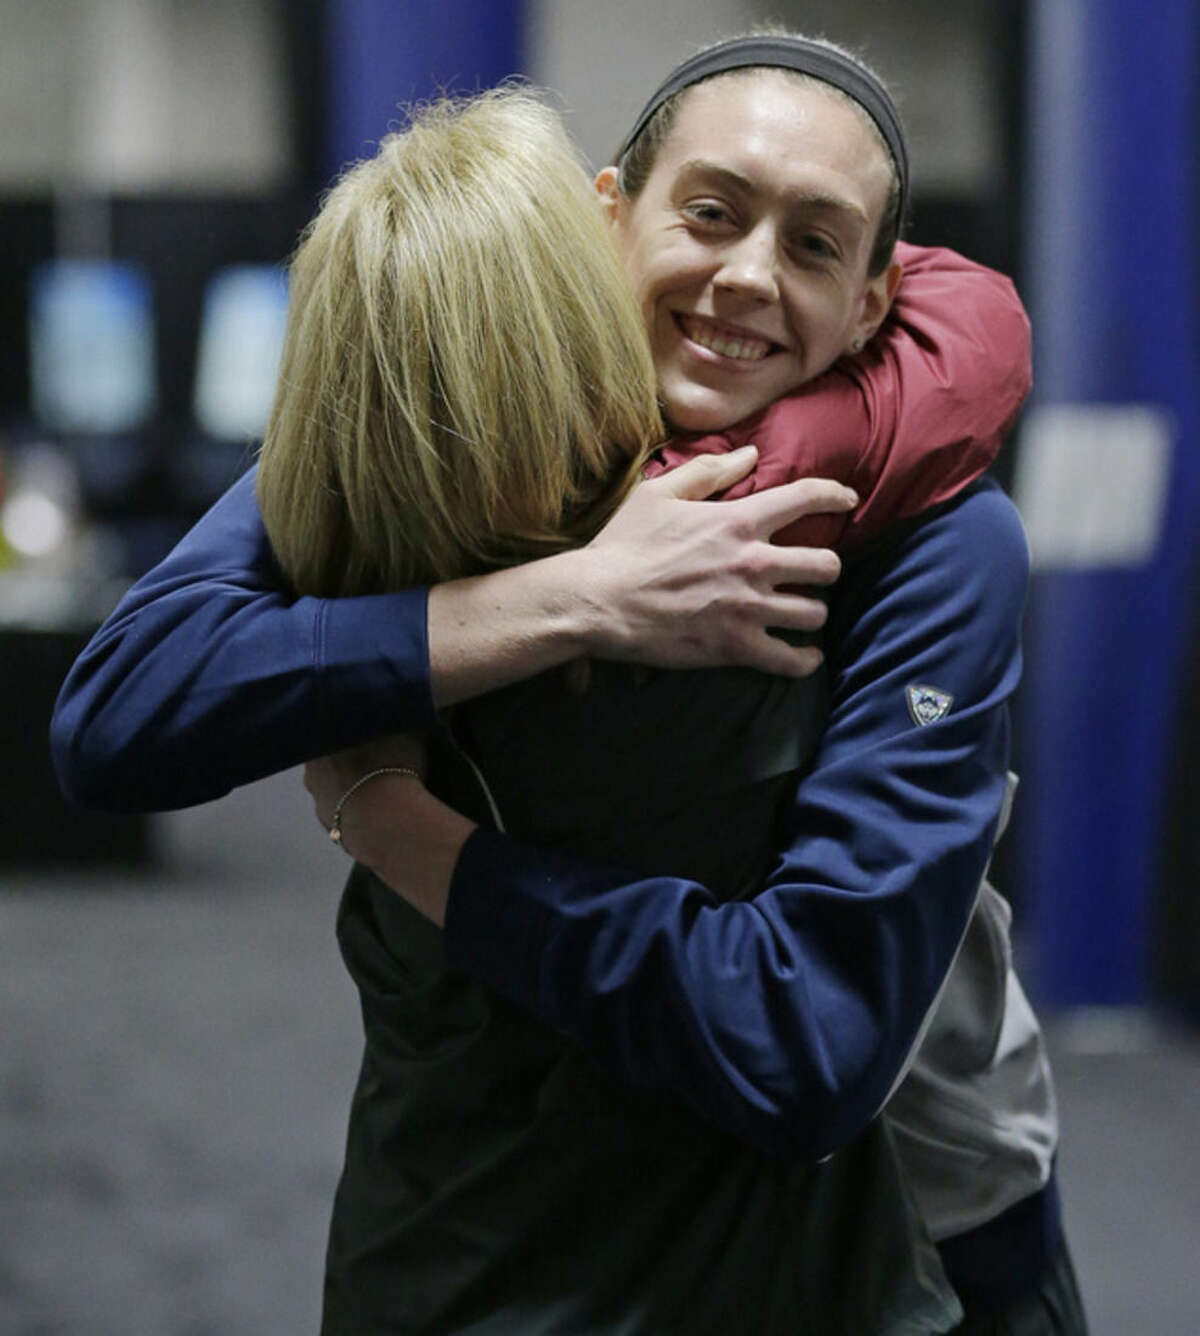 Connecticut forward Breanna Stewart embraces Florida State's Sue Semrau at the NCAA Final Four tournament, Saturday, April 4, 2015, in Tampa, Fla. UConn's versatile star earned The Associated Press Player of the Year award Saturday for the second consecutive year, becoming just the fifth player to do it. Florida State's Sue Semrau was selected as AP Coach of the year for the first time. (AP Photo/Chris O'Meara)